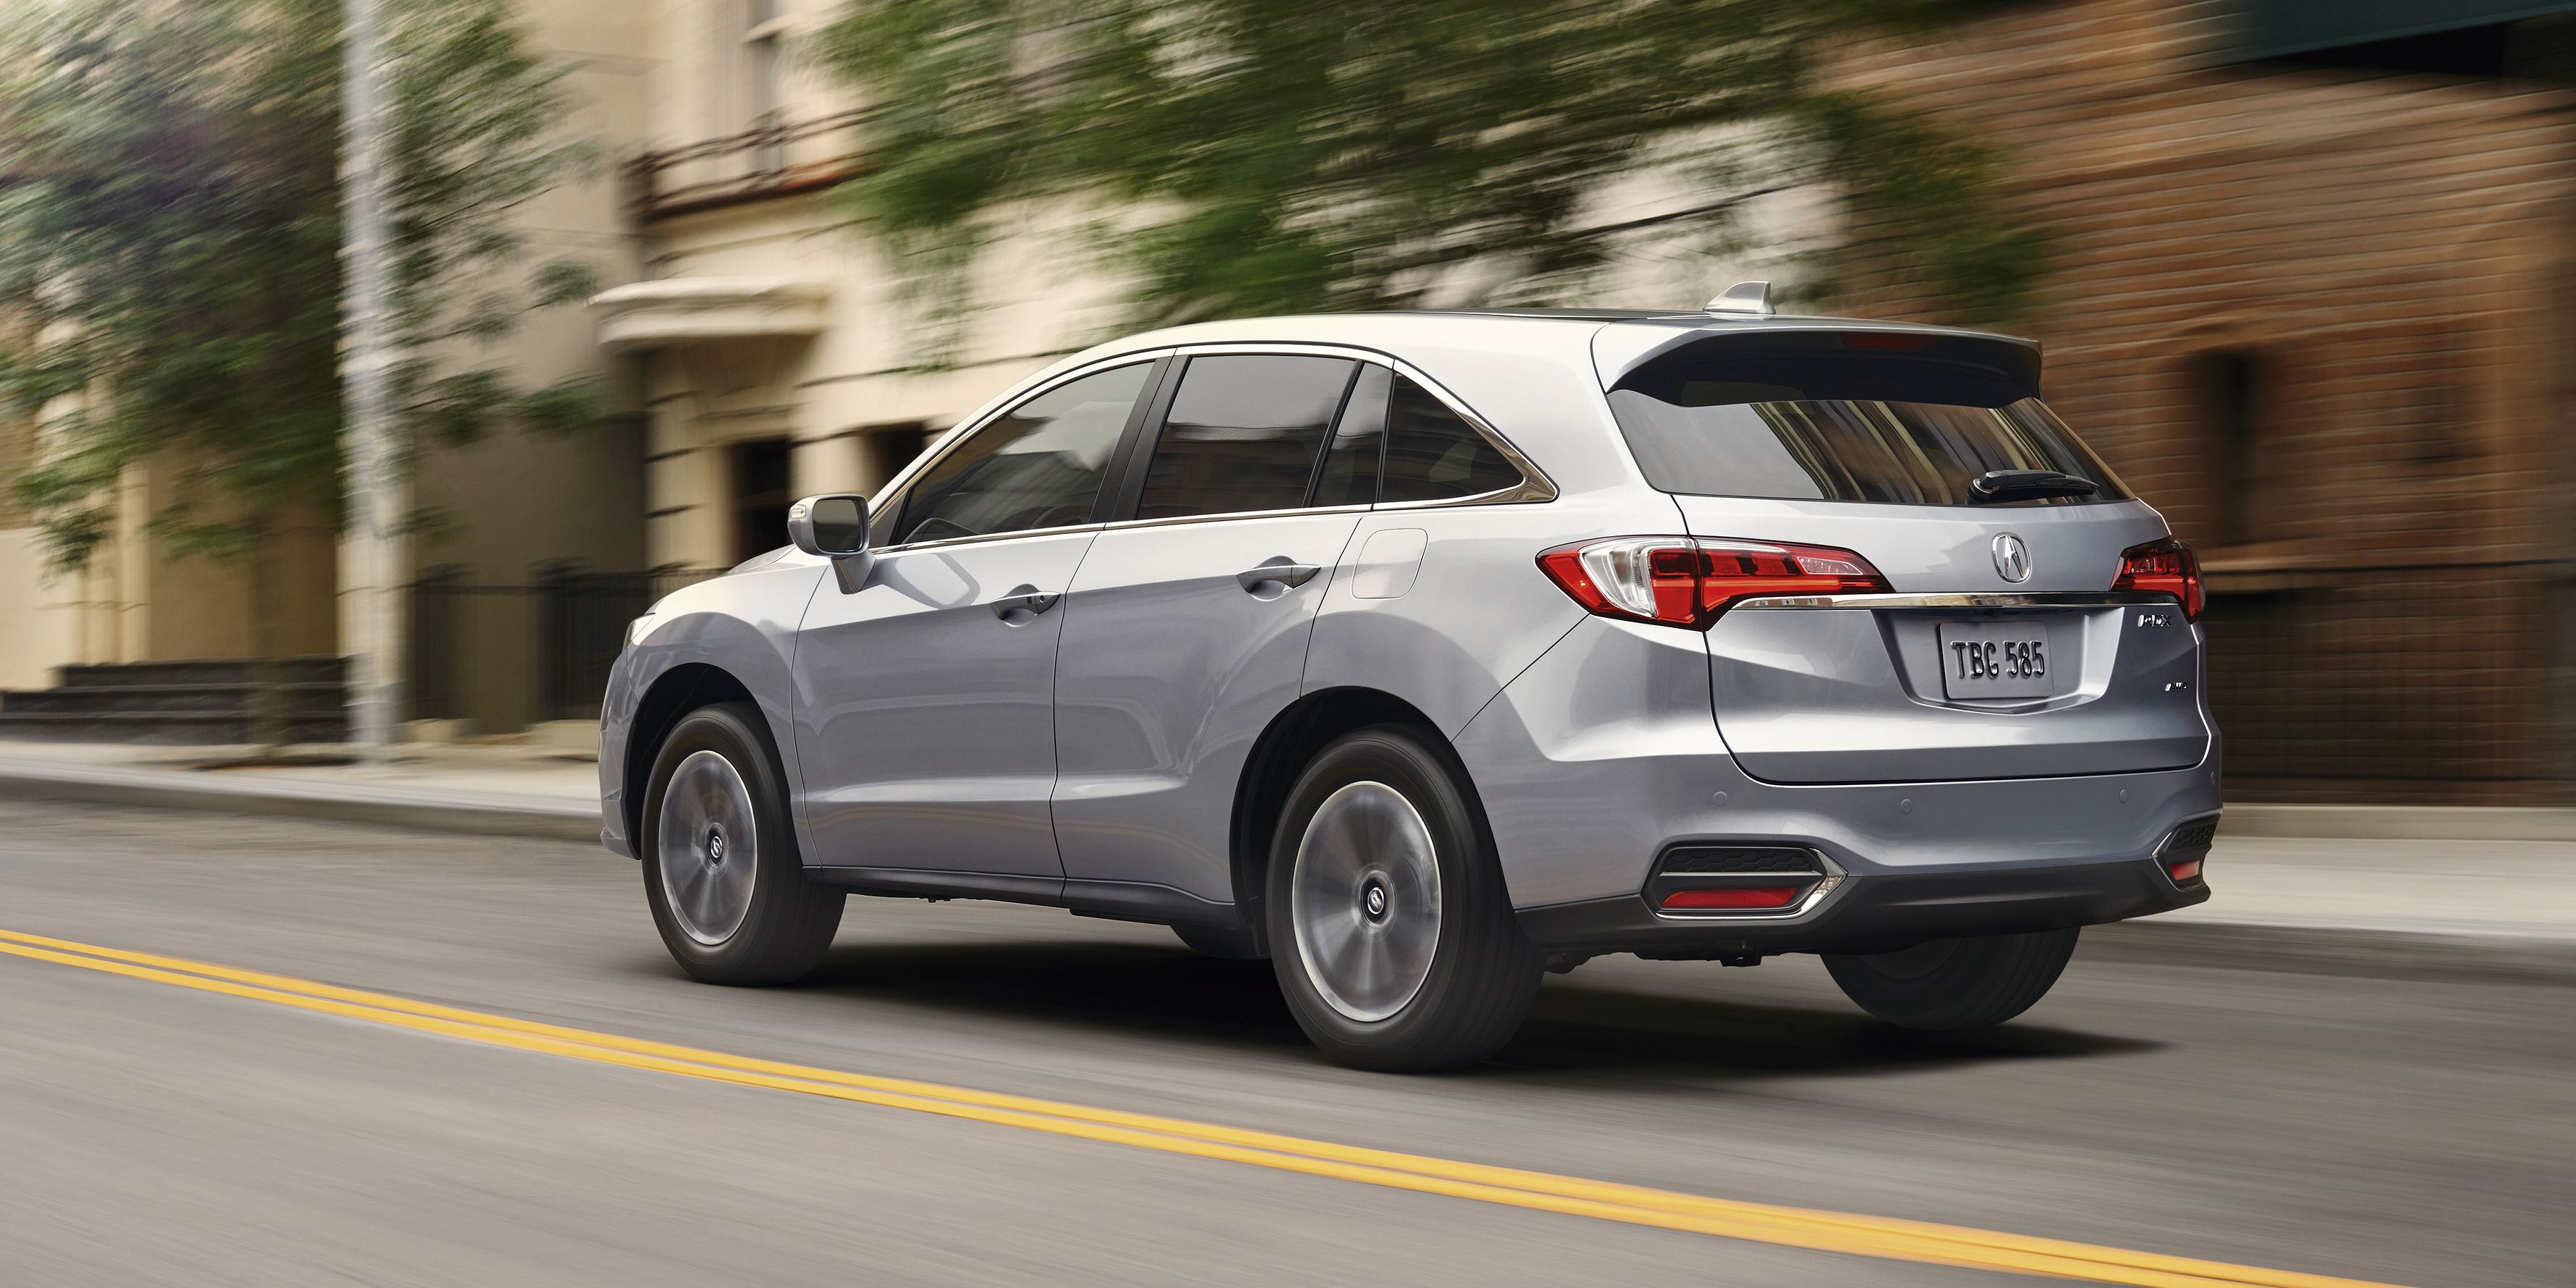 Shot Description Rear 3/4 Rig , Project Name 2BS shoot, Job Number ACN1-RDX-14-08428_2BS, Model Year 2016, Model RDX, Trim Level Advance, Exterior Color Slate Silver Metallic, Interior Color Greystone, Date 1/26/15, Photographer Brian Konoske, Location / StudiLong Beach, 